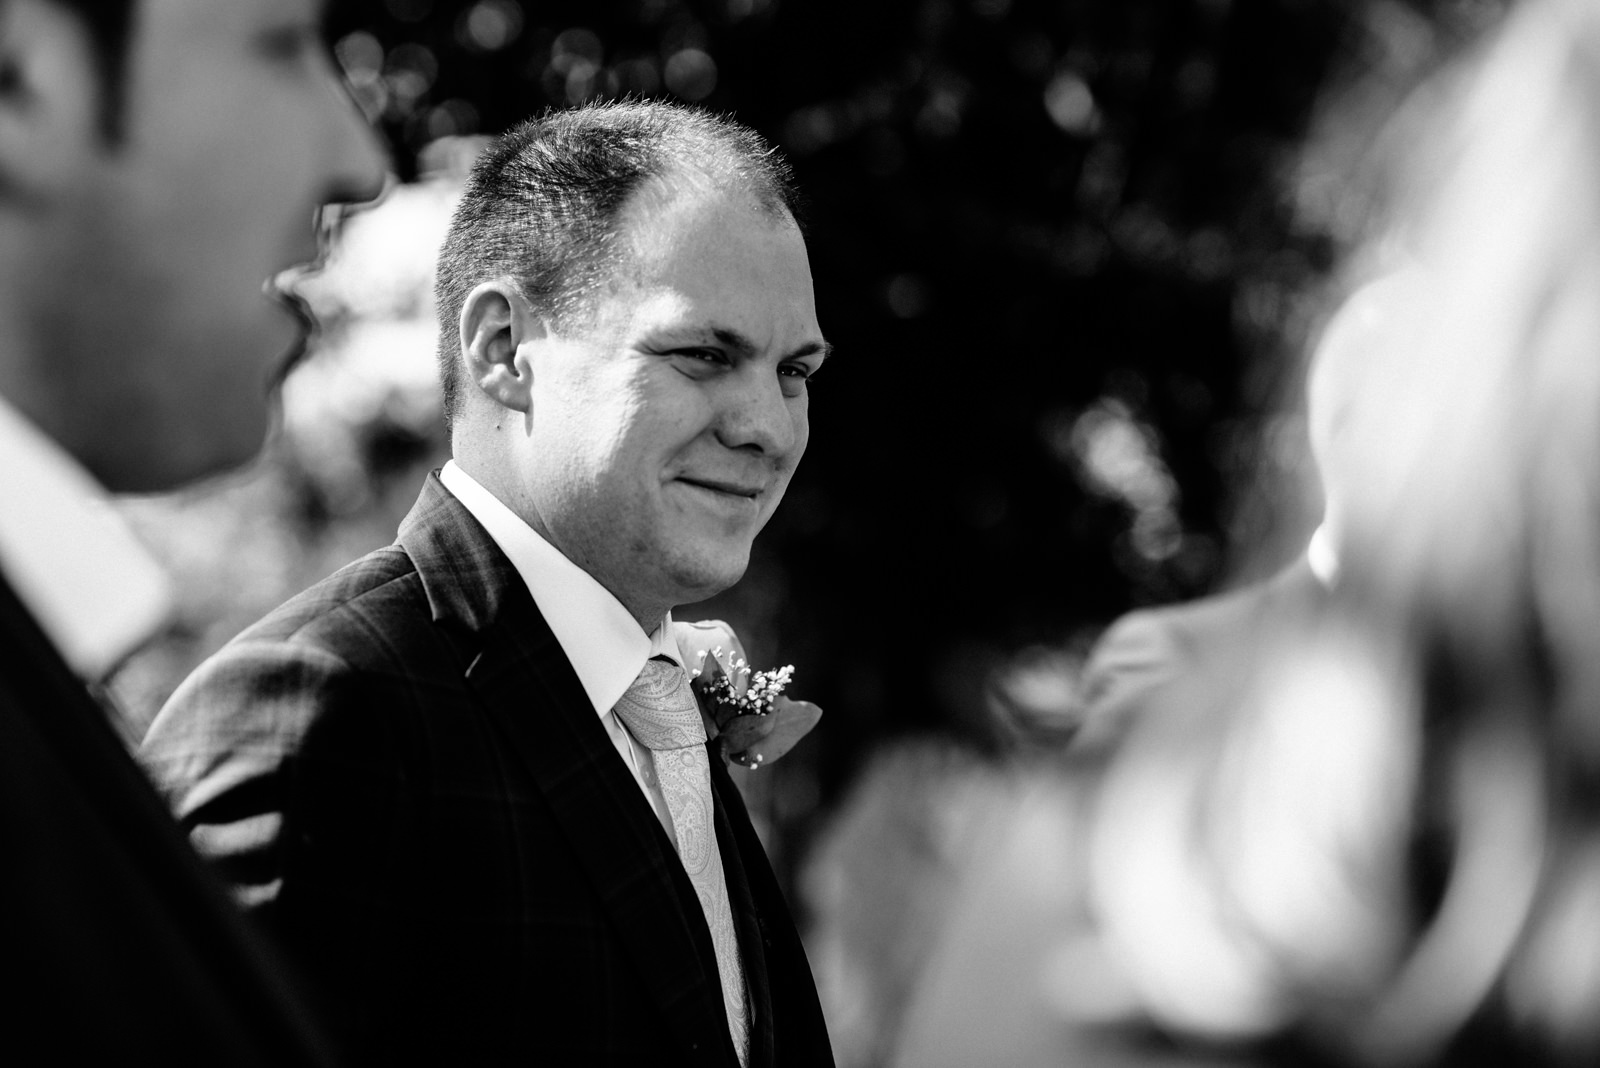 black and white image of groom